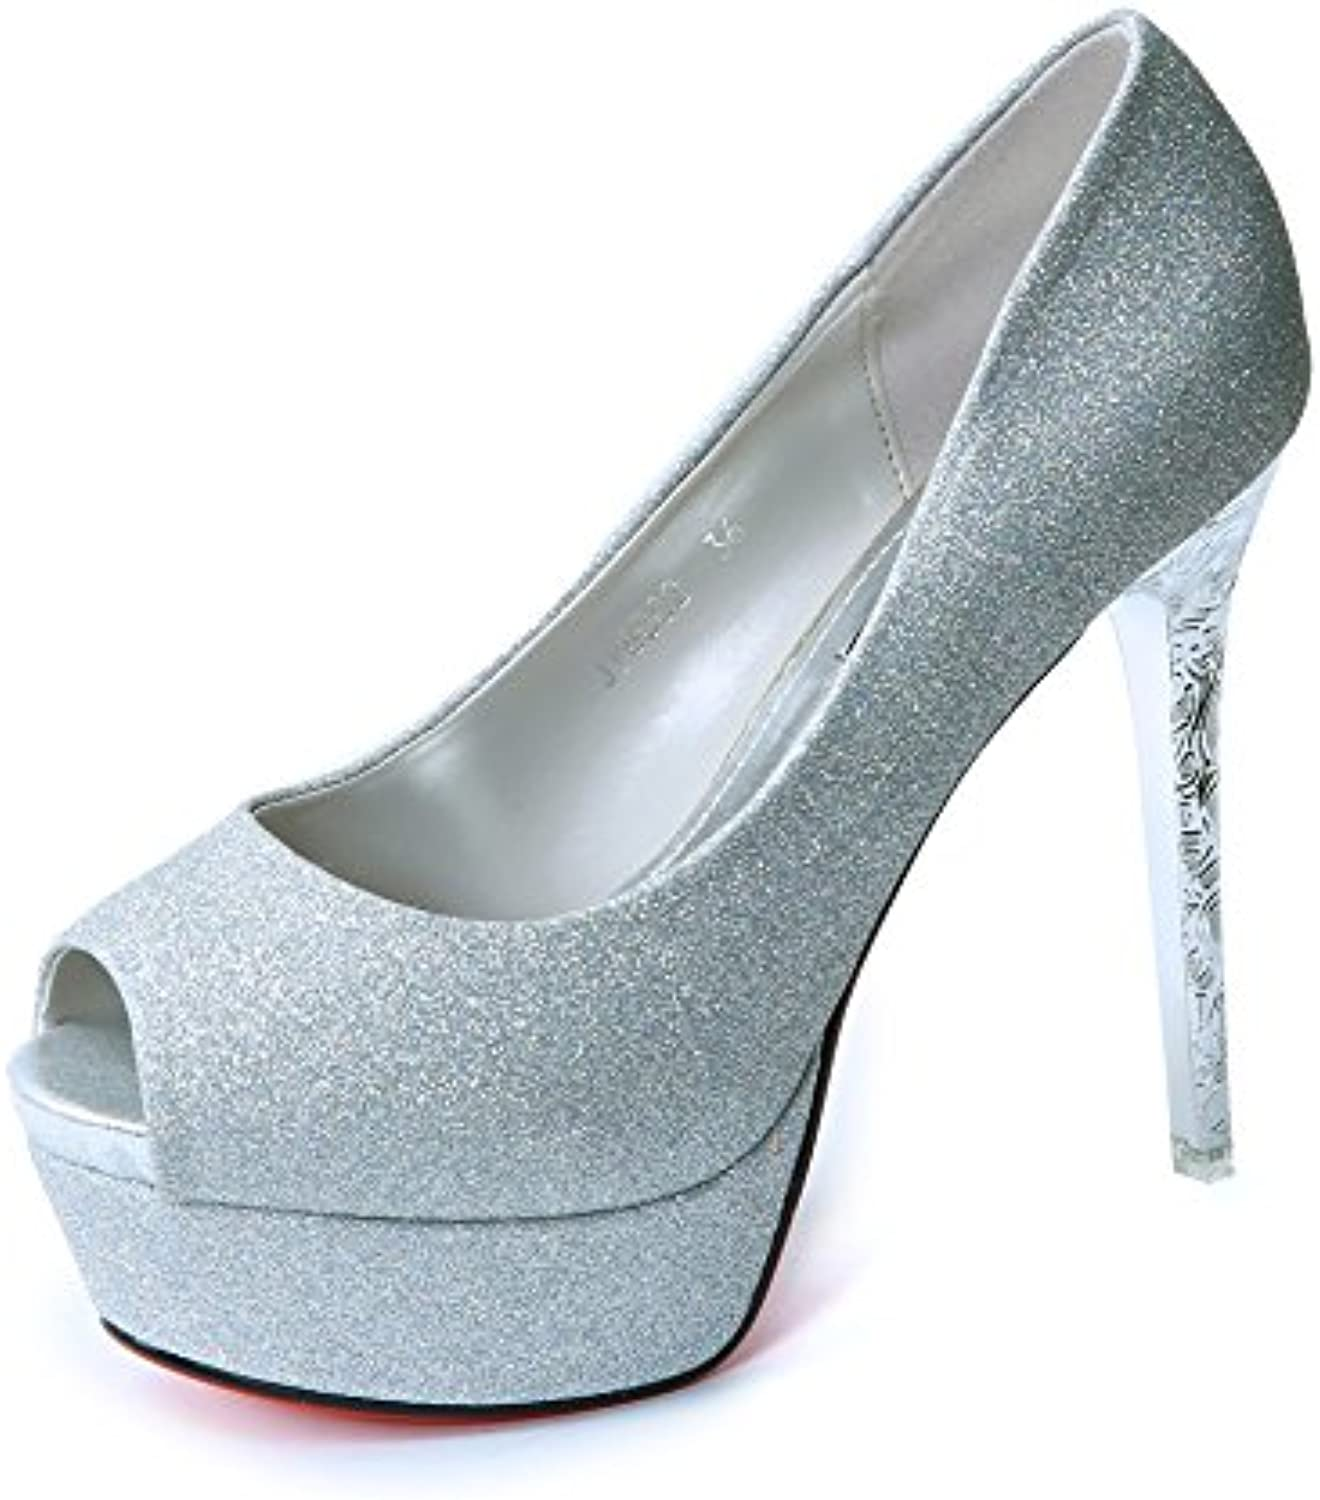 LGK&FA Sequins Super High Heels Women's Shoes Fish Mouths Waterproof Tables and Fine Shoes. Thirty-Nine Silvery